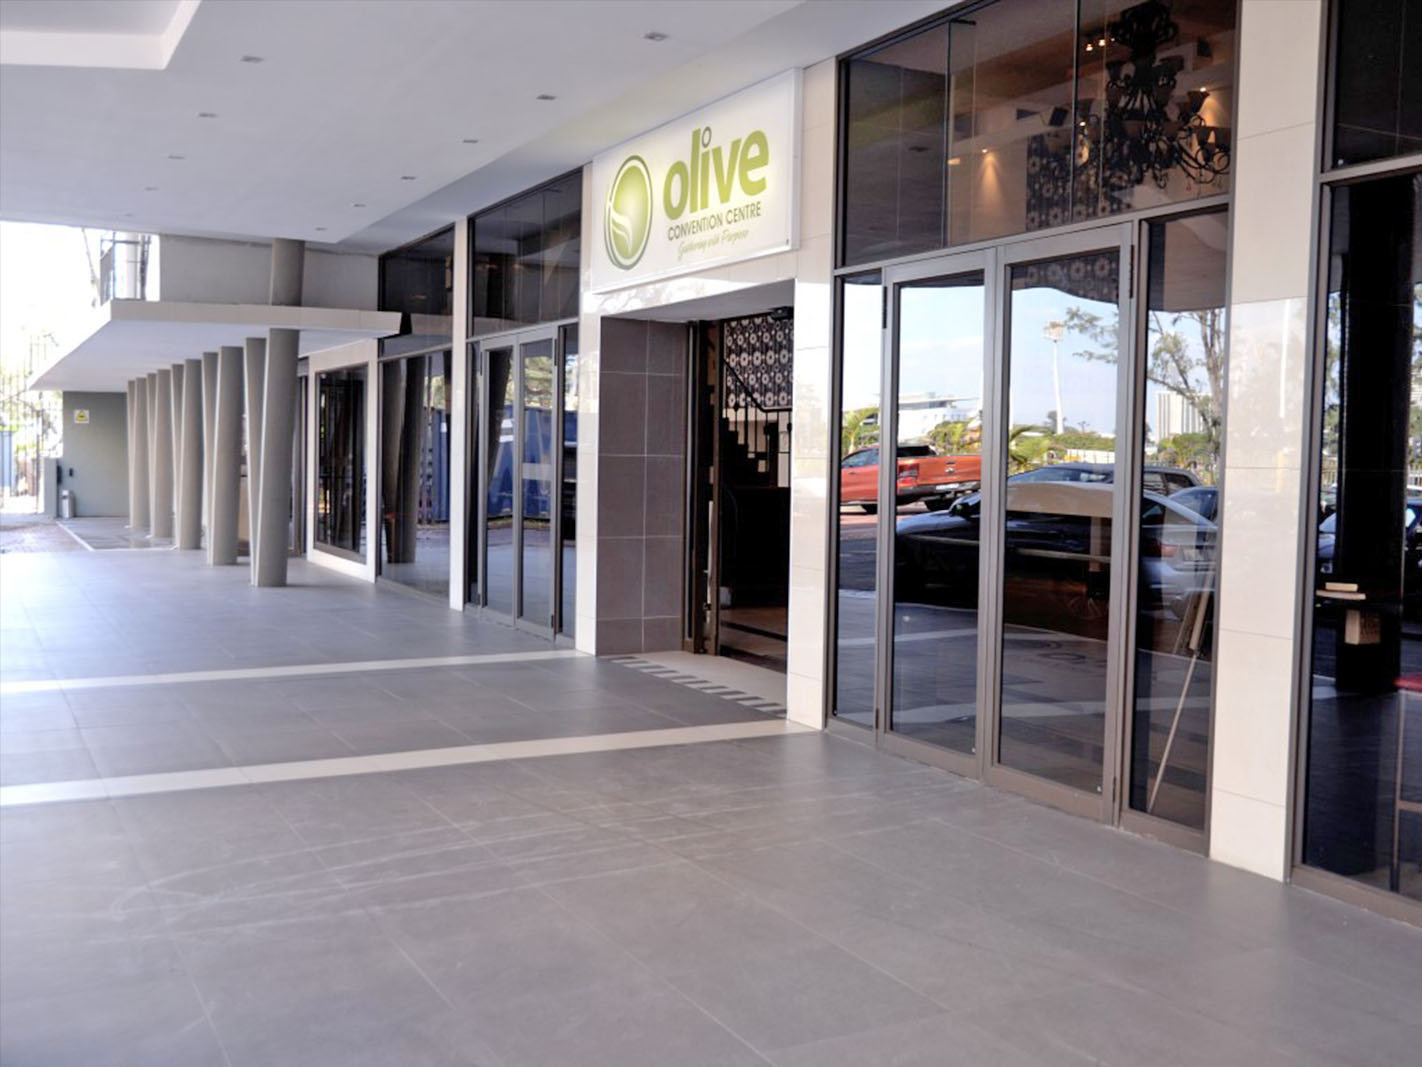 Olive Convention Centre